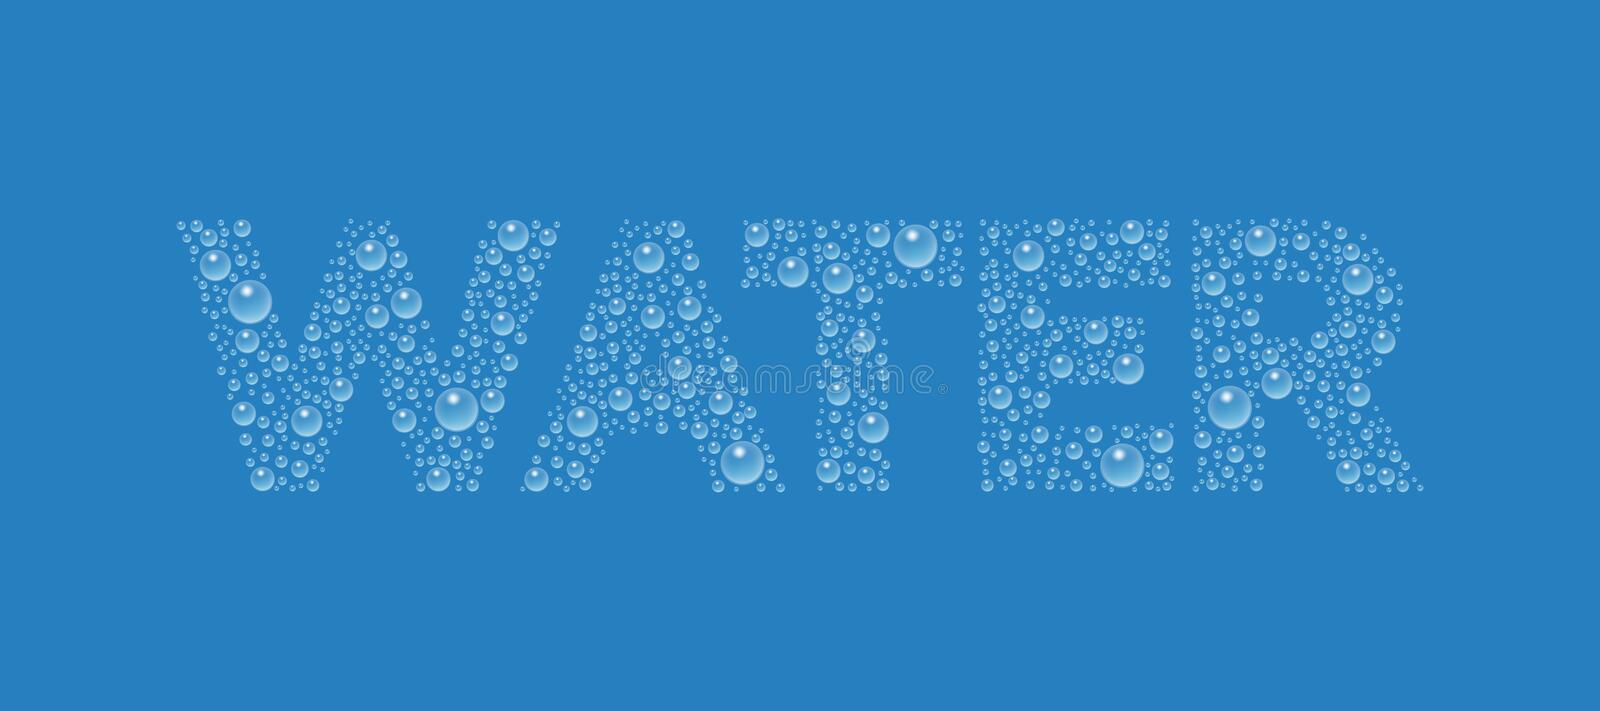 Text from droplets texture. Word Water. vector illustration